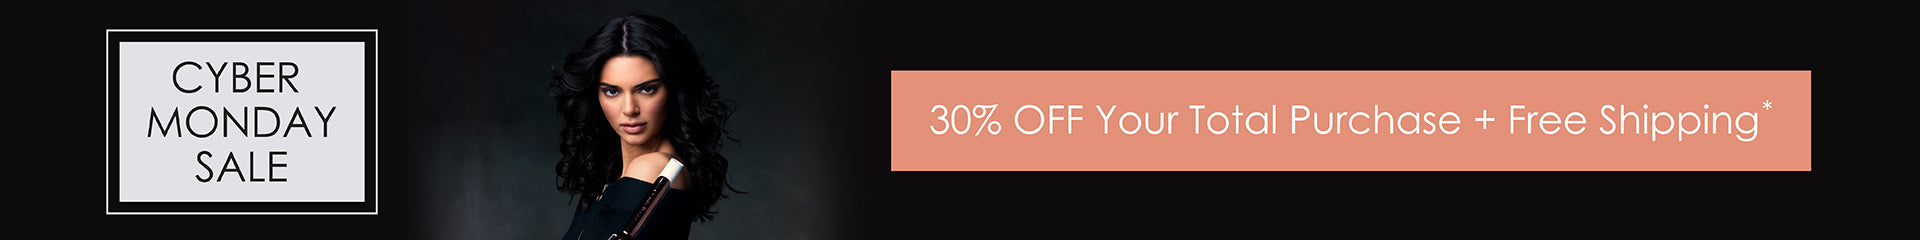 Cyber Monday Sale - 30% OFF Your Entire Order + Free Shipping in the USA